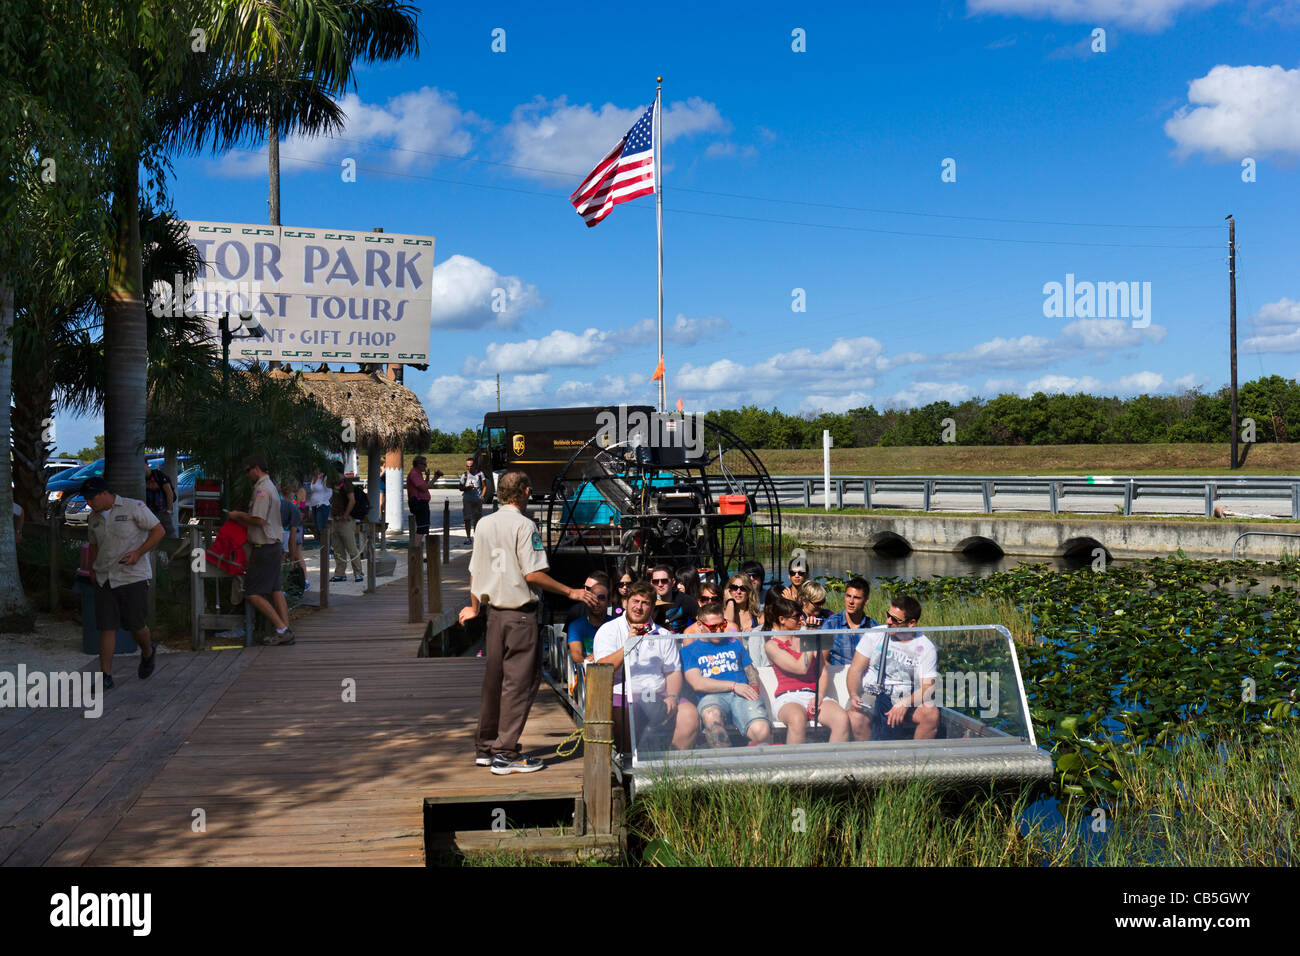 Airboat alongside the dock at Gator Park Airboat Tours on Highway 41 (Tamiami Trail), Florida Everglades, Florida, - Stock Image